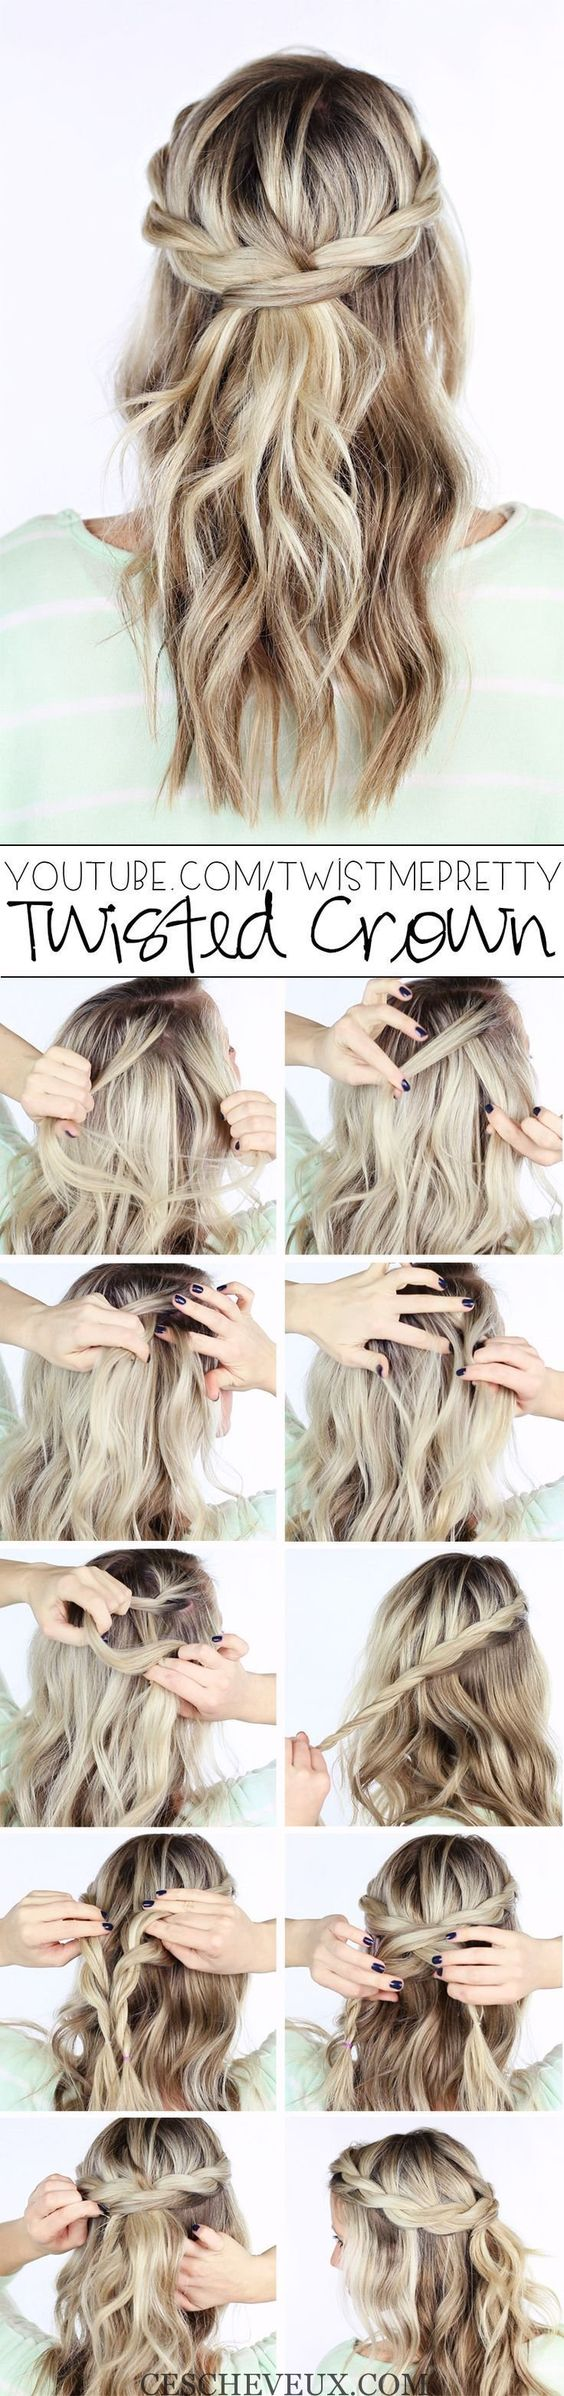 Chic Twisted updo moitié Coiffure